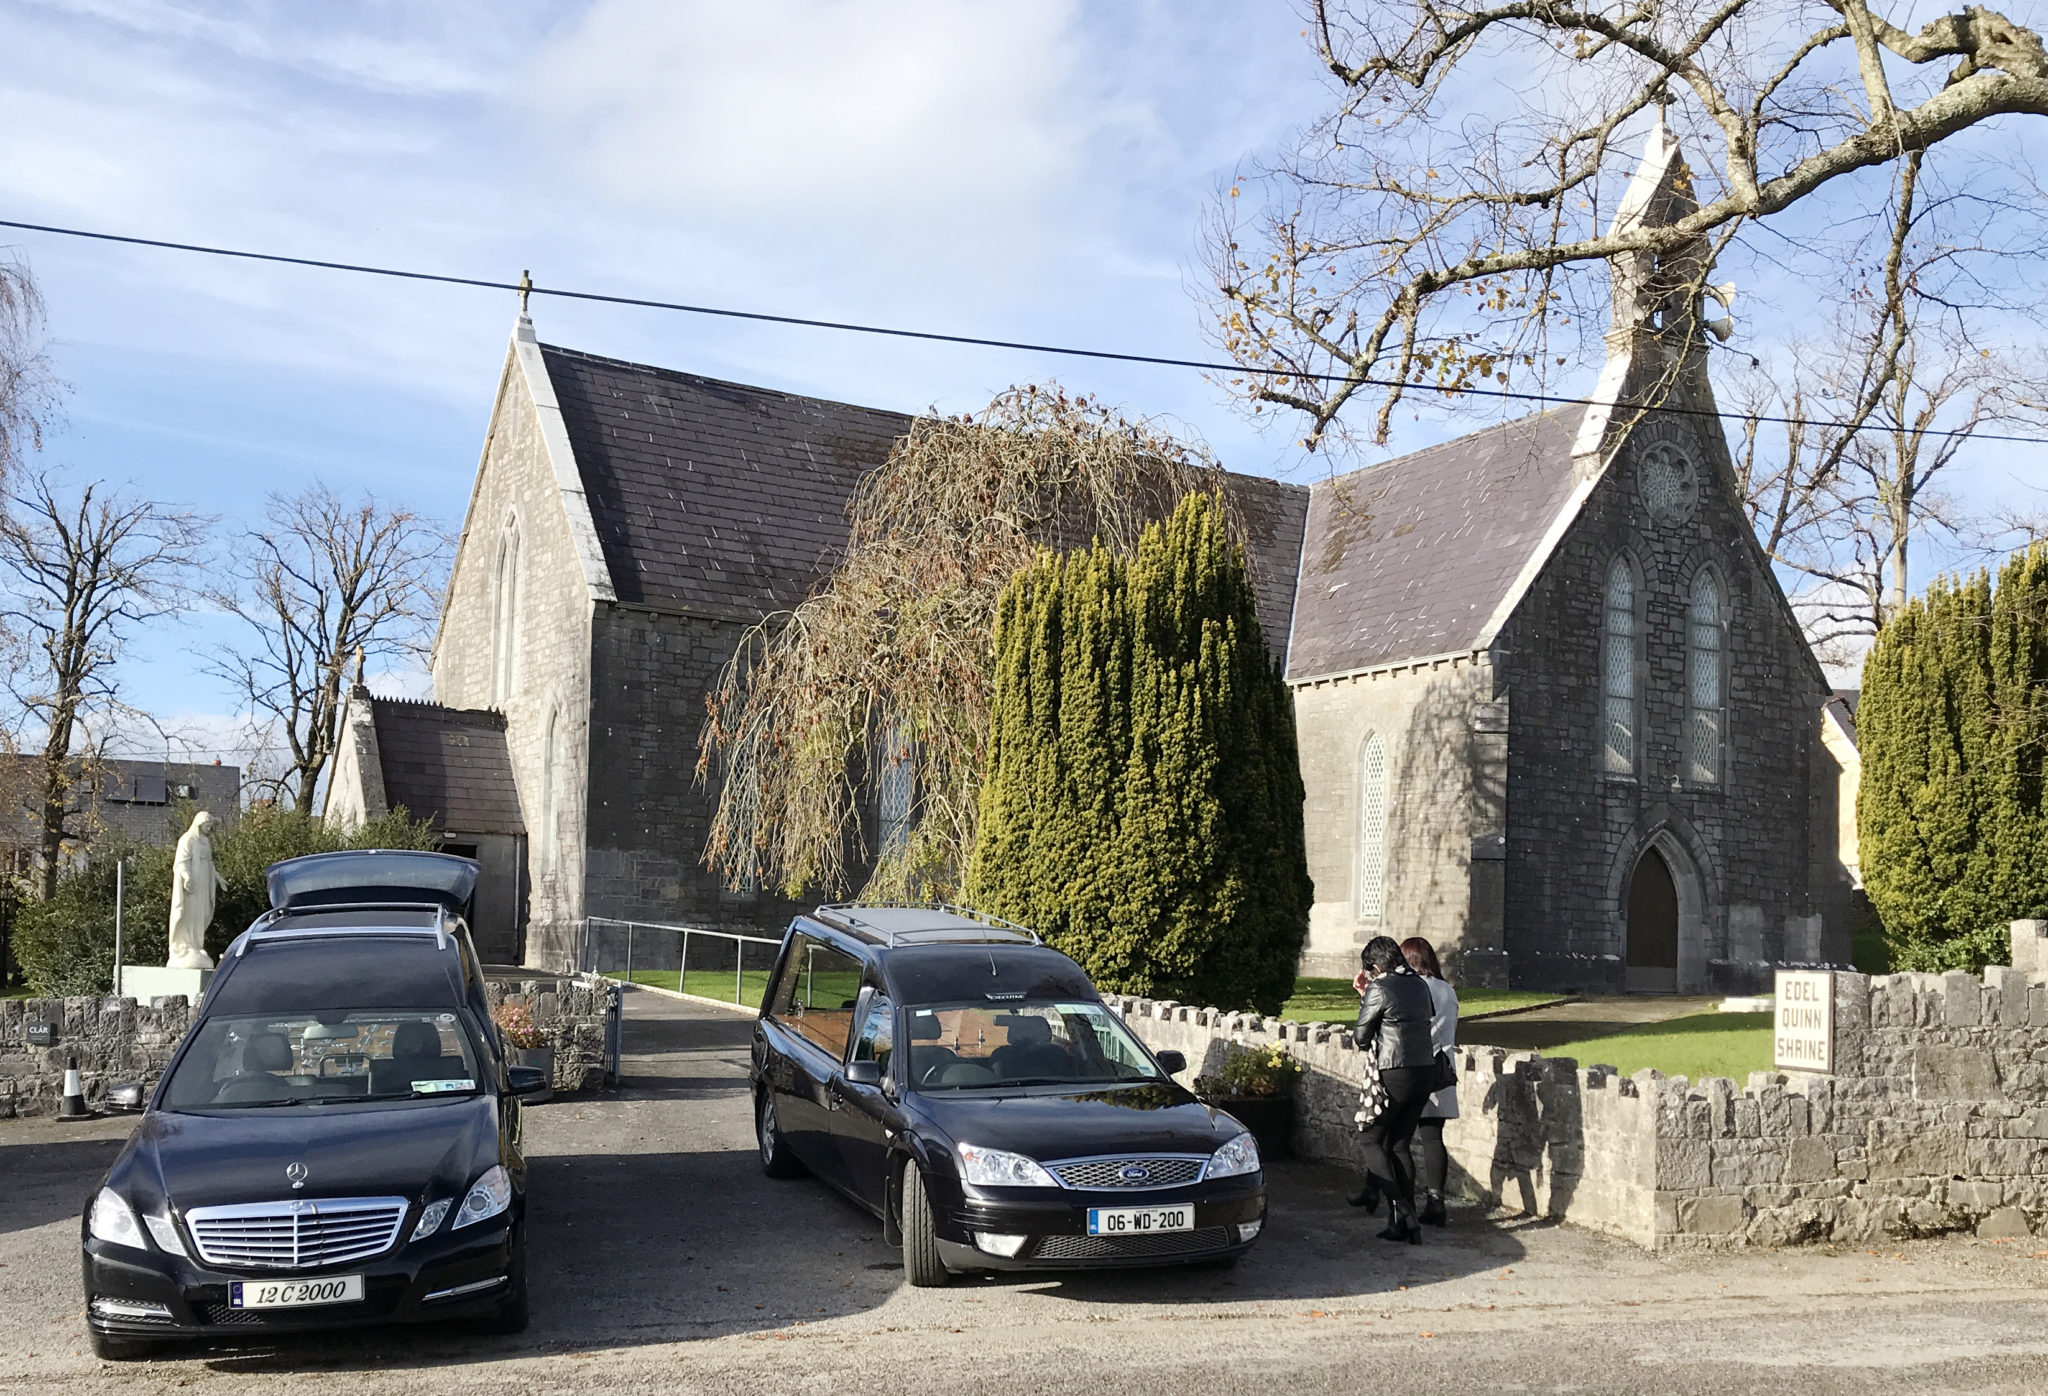 Hearses parked outside St Mary's Church, Castlemagner, County Cork before the funeral of Diarmuid O'Sullivan and Tadhg O'Sullivan Kanturk